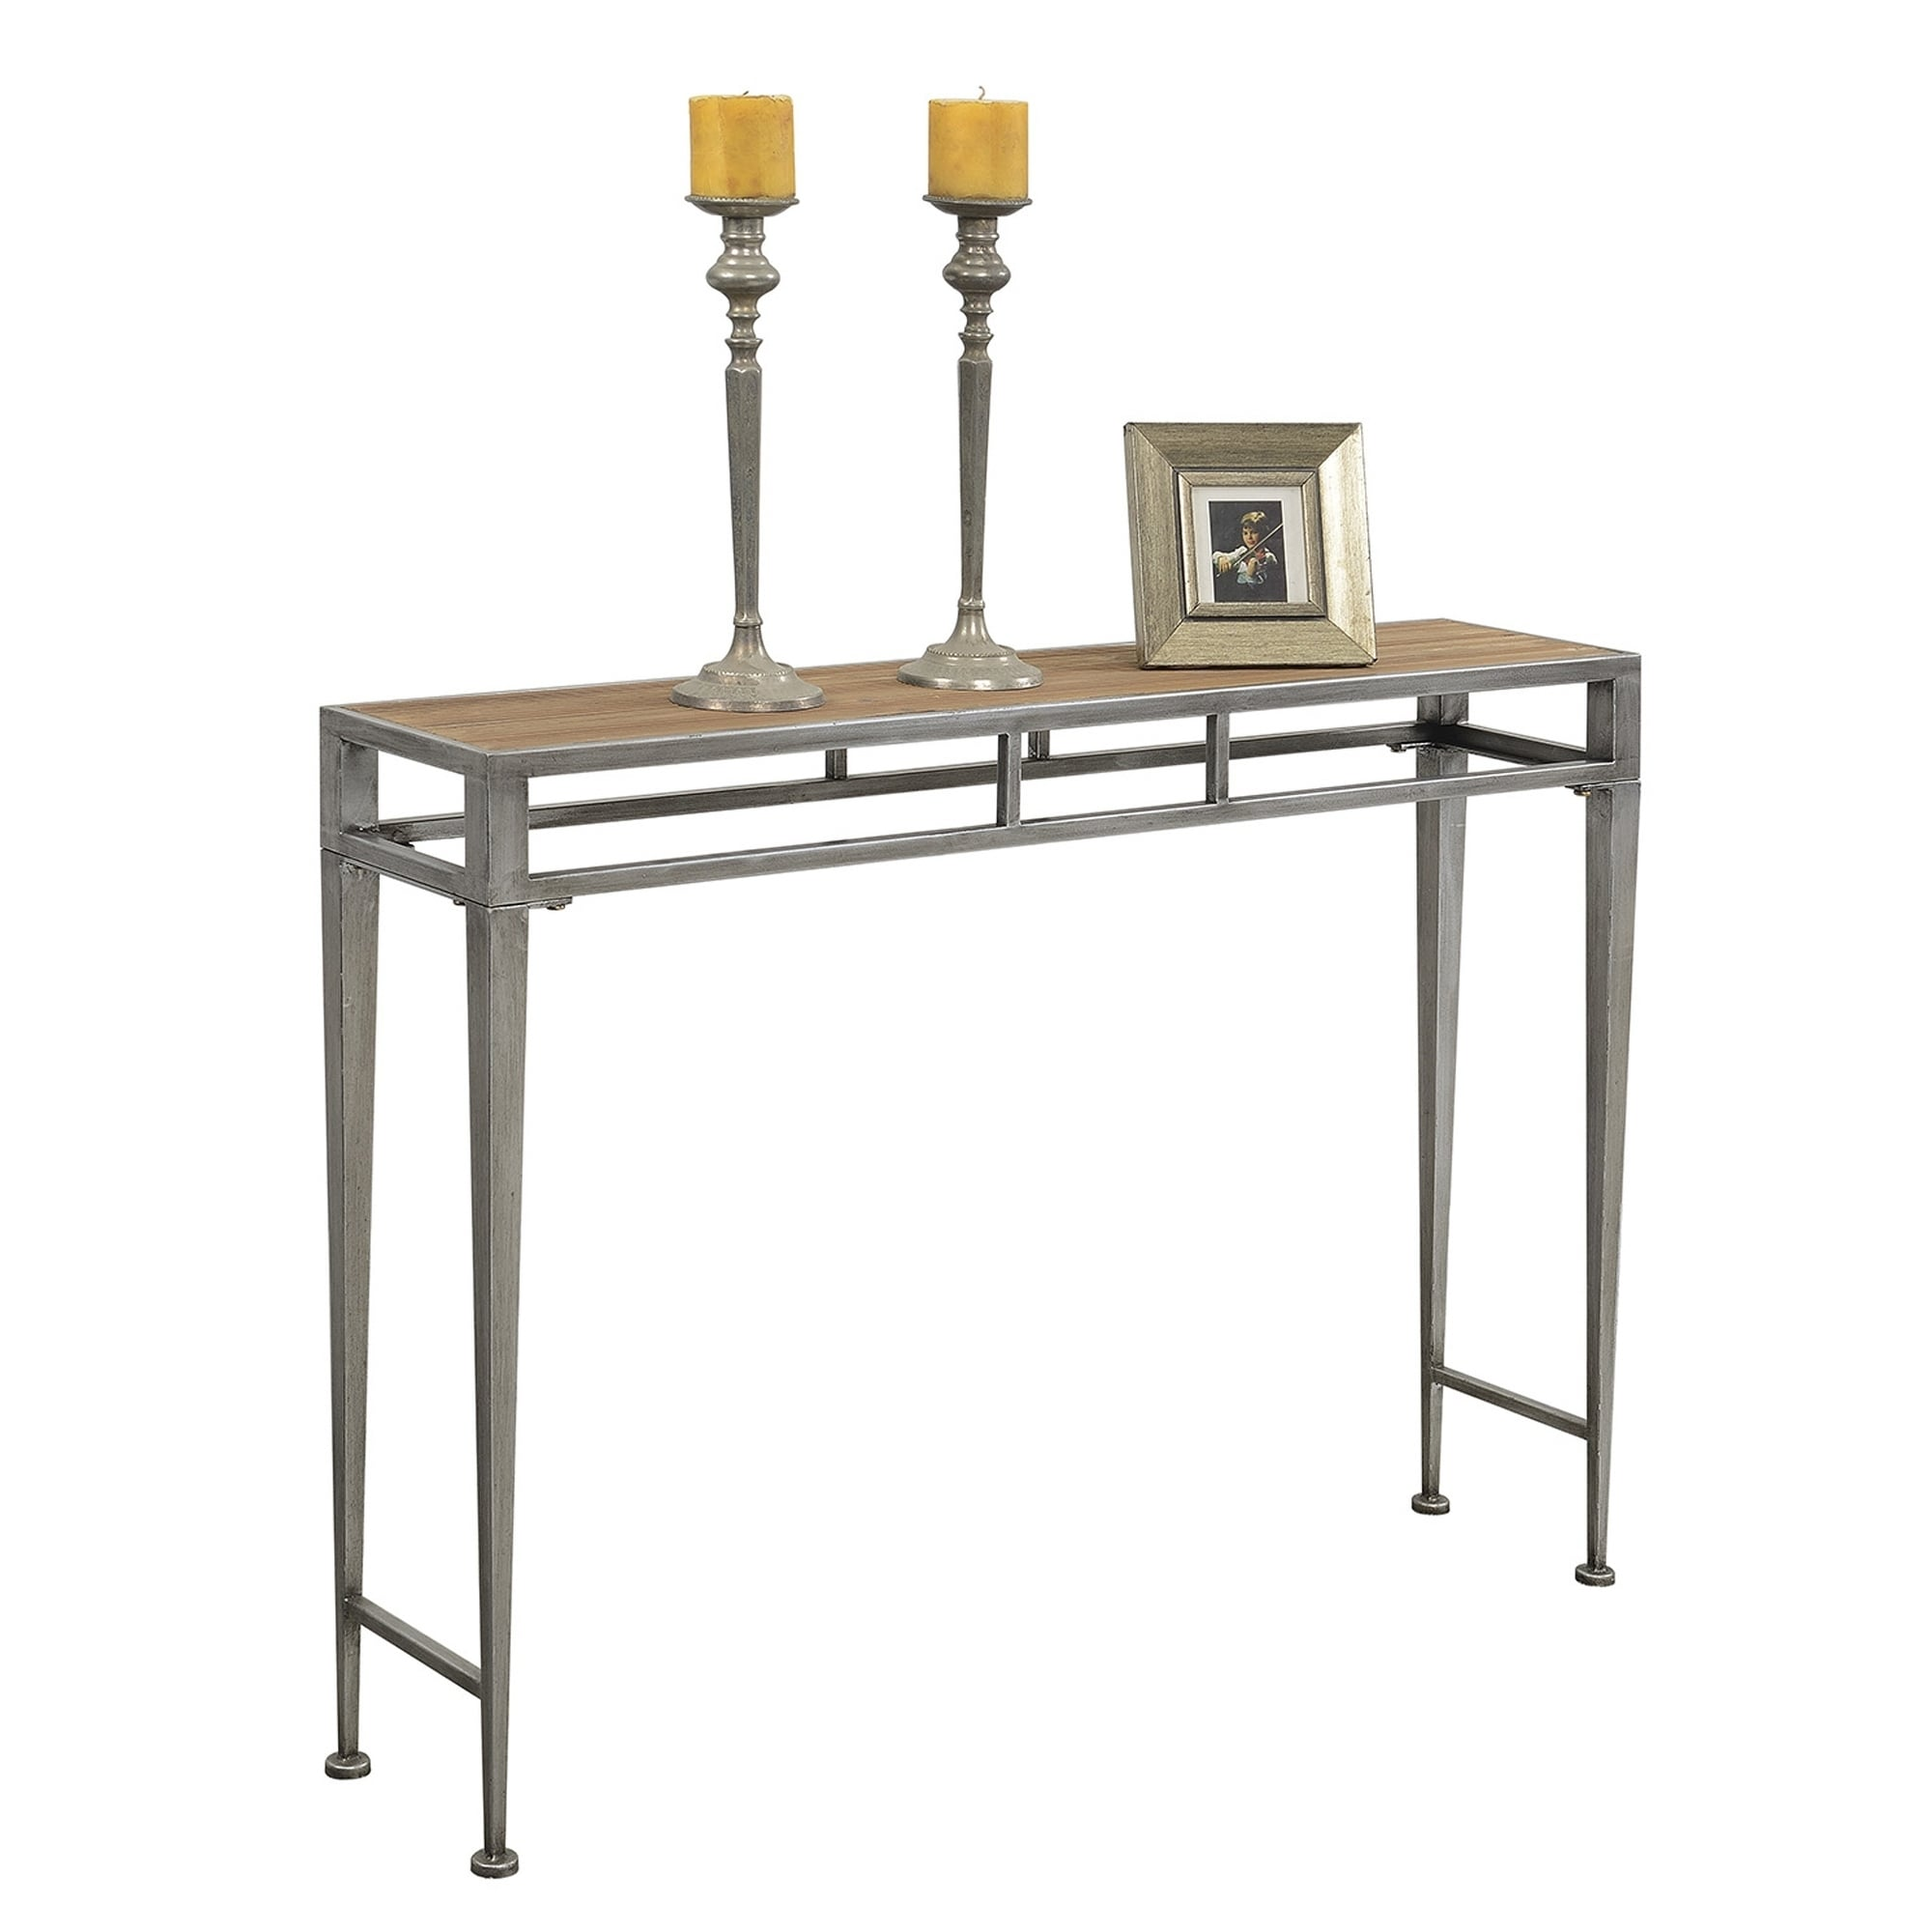 Gold Coast Julia Hall Iron and Glass Console Table - Free Shipping Today -  Overstock.com - 19143603